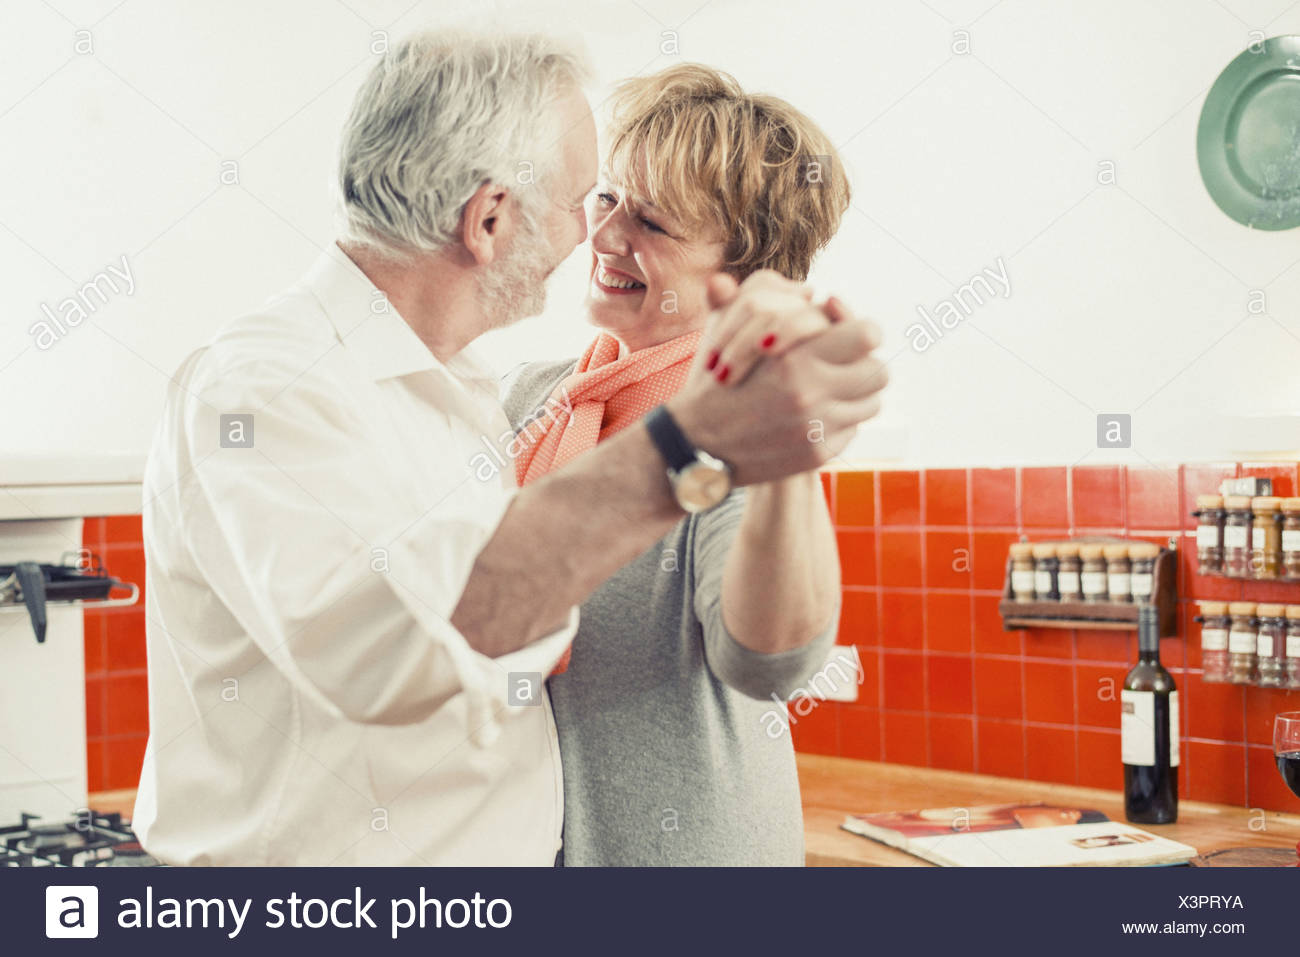 Couple dancing in kitchen - Stock Image